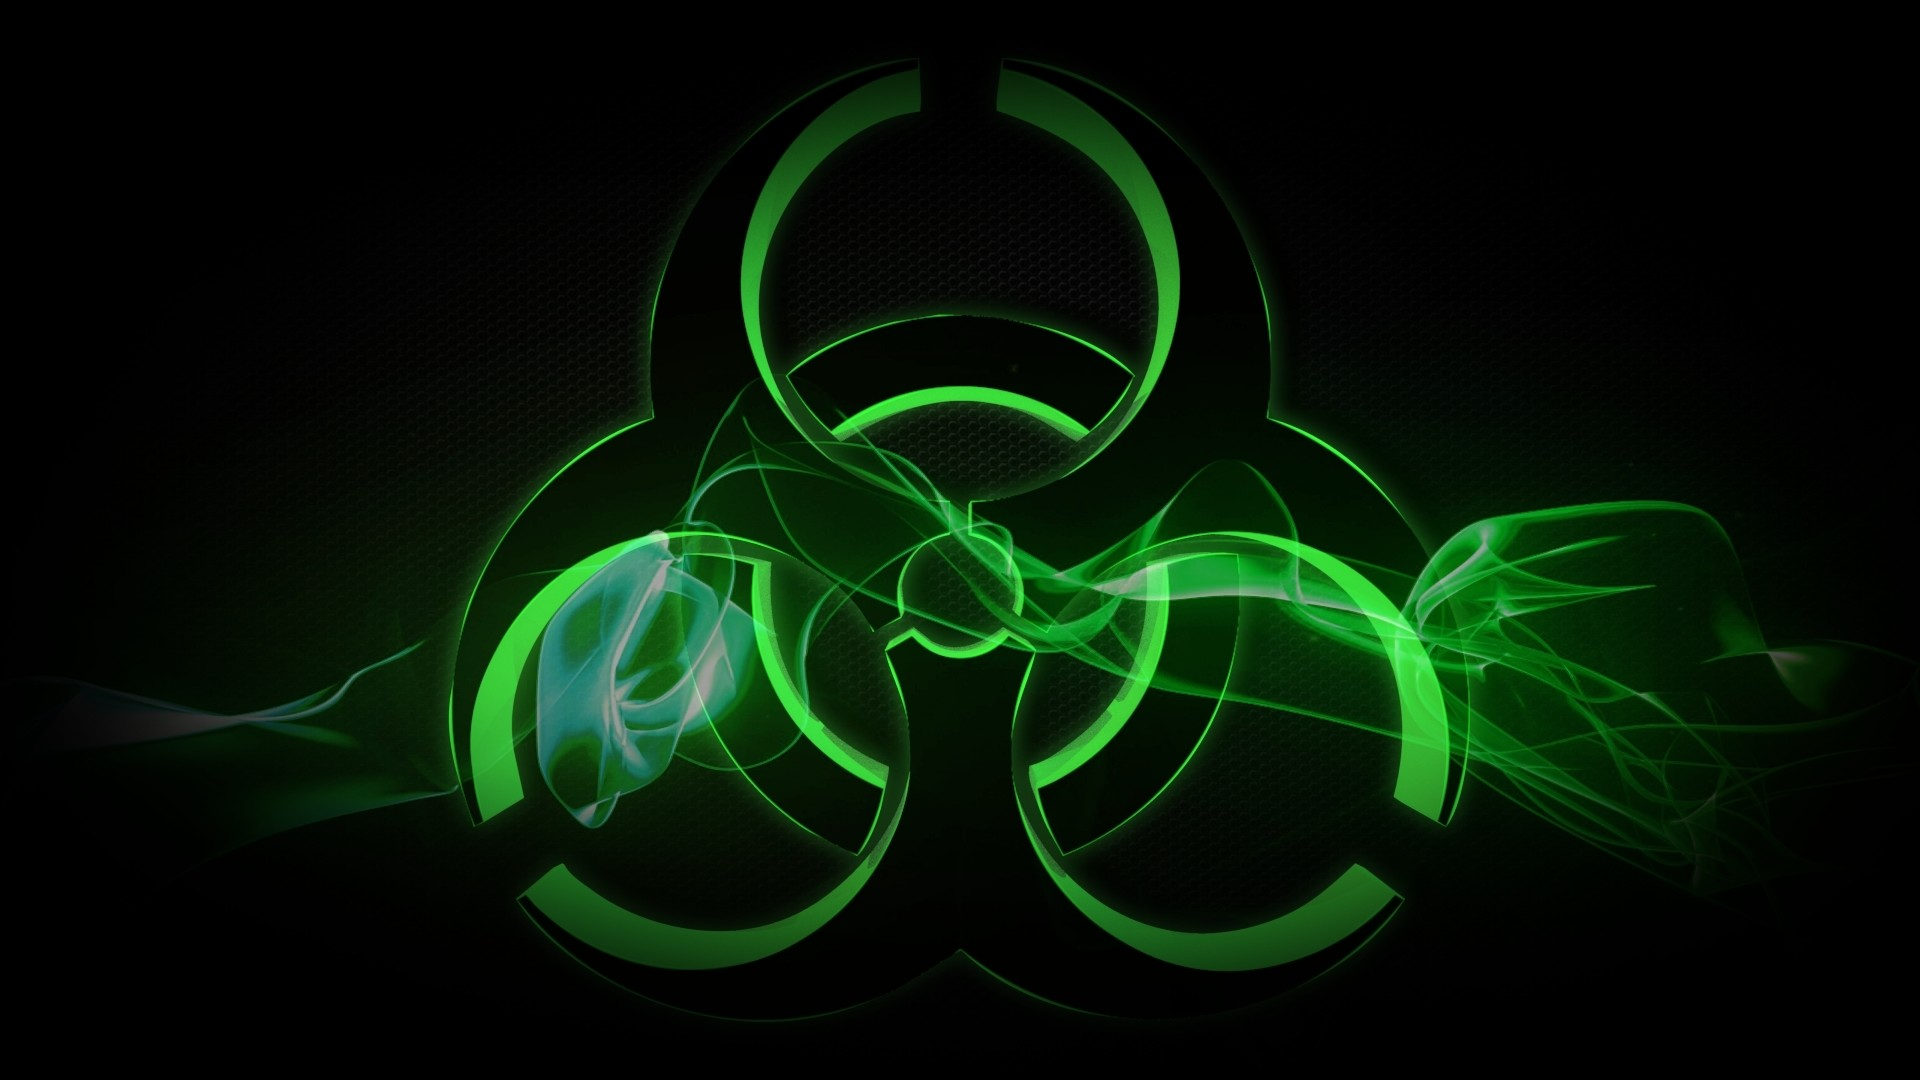 Best Looking Cars Wallpapers Radiation Symbol Wallpaper 49 Images